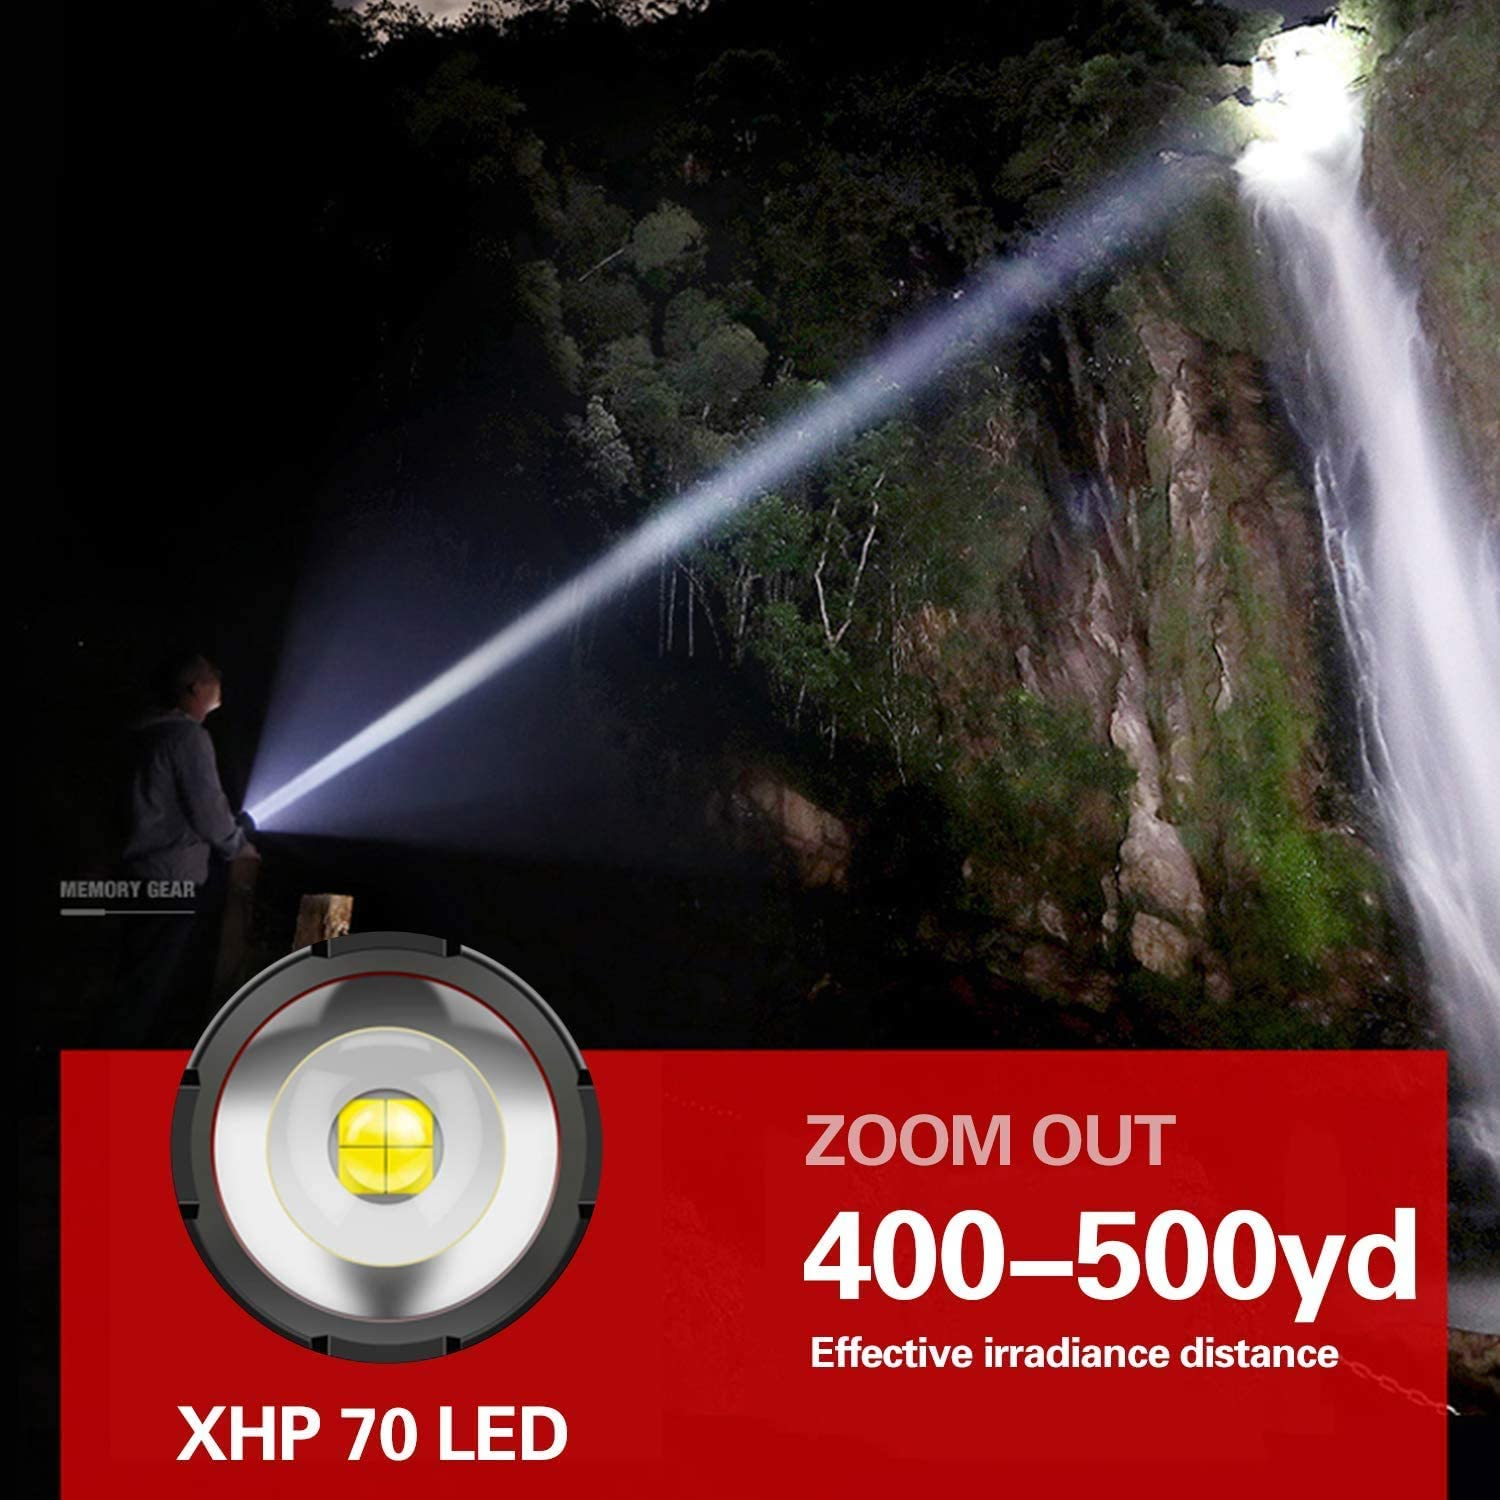 Xhp70 super bright 3 modes usb rechargeable flashlight torch with 2pcs 5000mAh 26650 rechargeable battery high 4000 lumen waterproof zoomable flashlight with power indicator